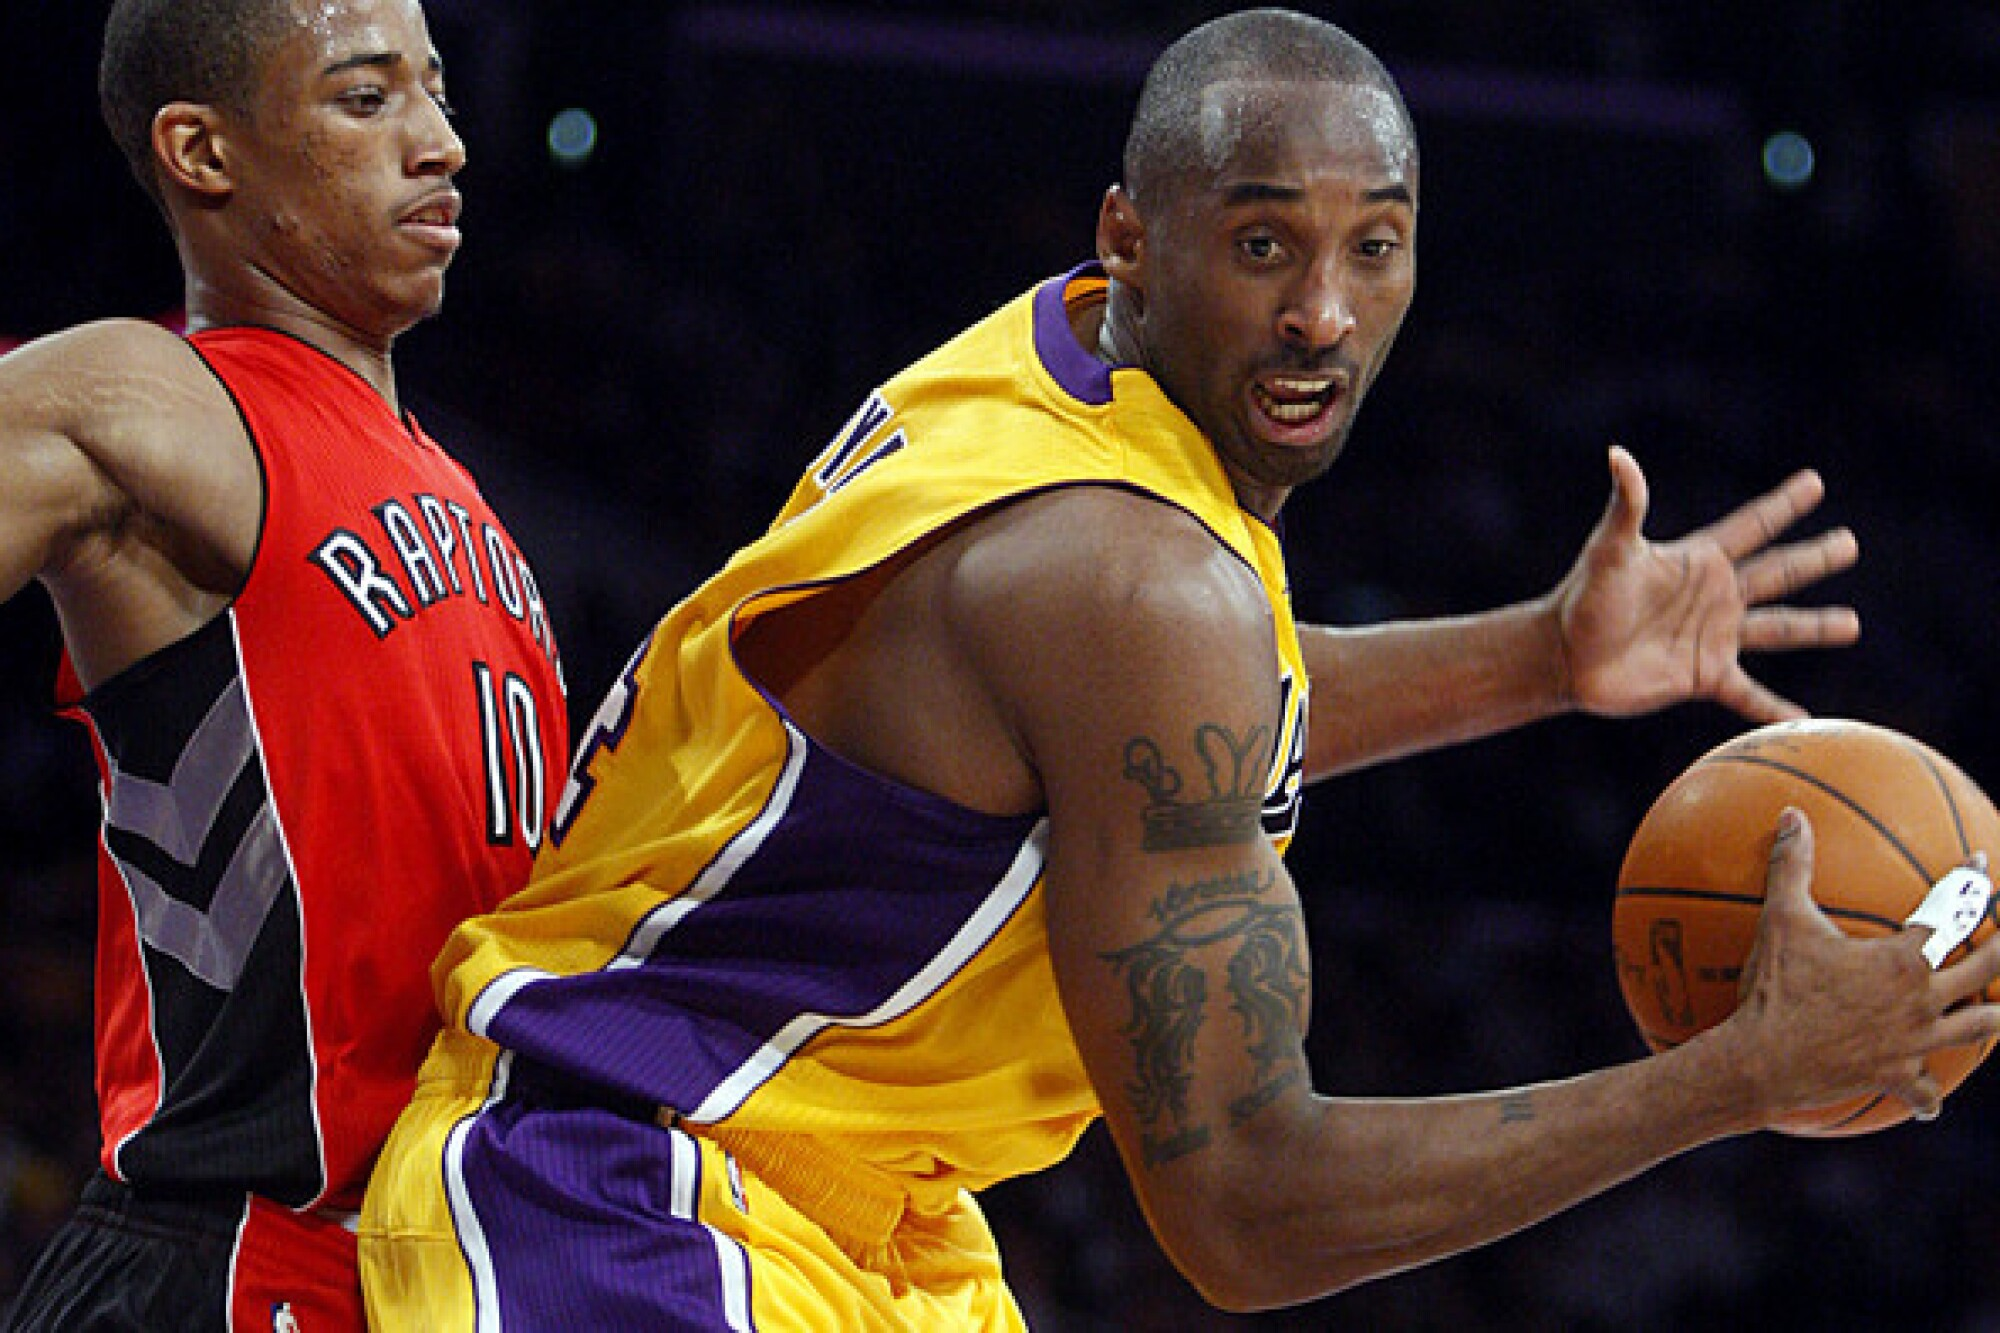 Lakers guard Kobe Bryant receives a pass while guarded by Raptors guard DeMar DeRozan.